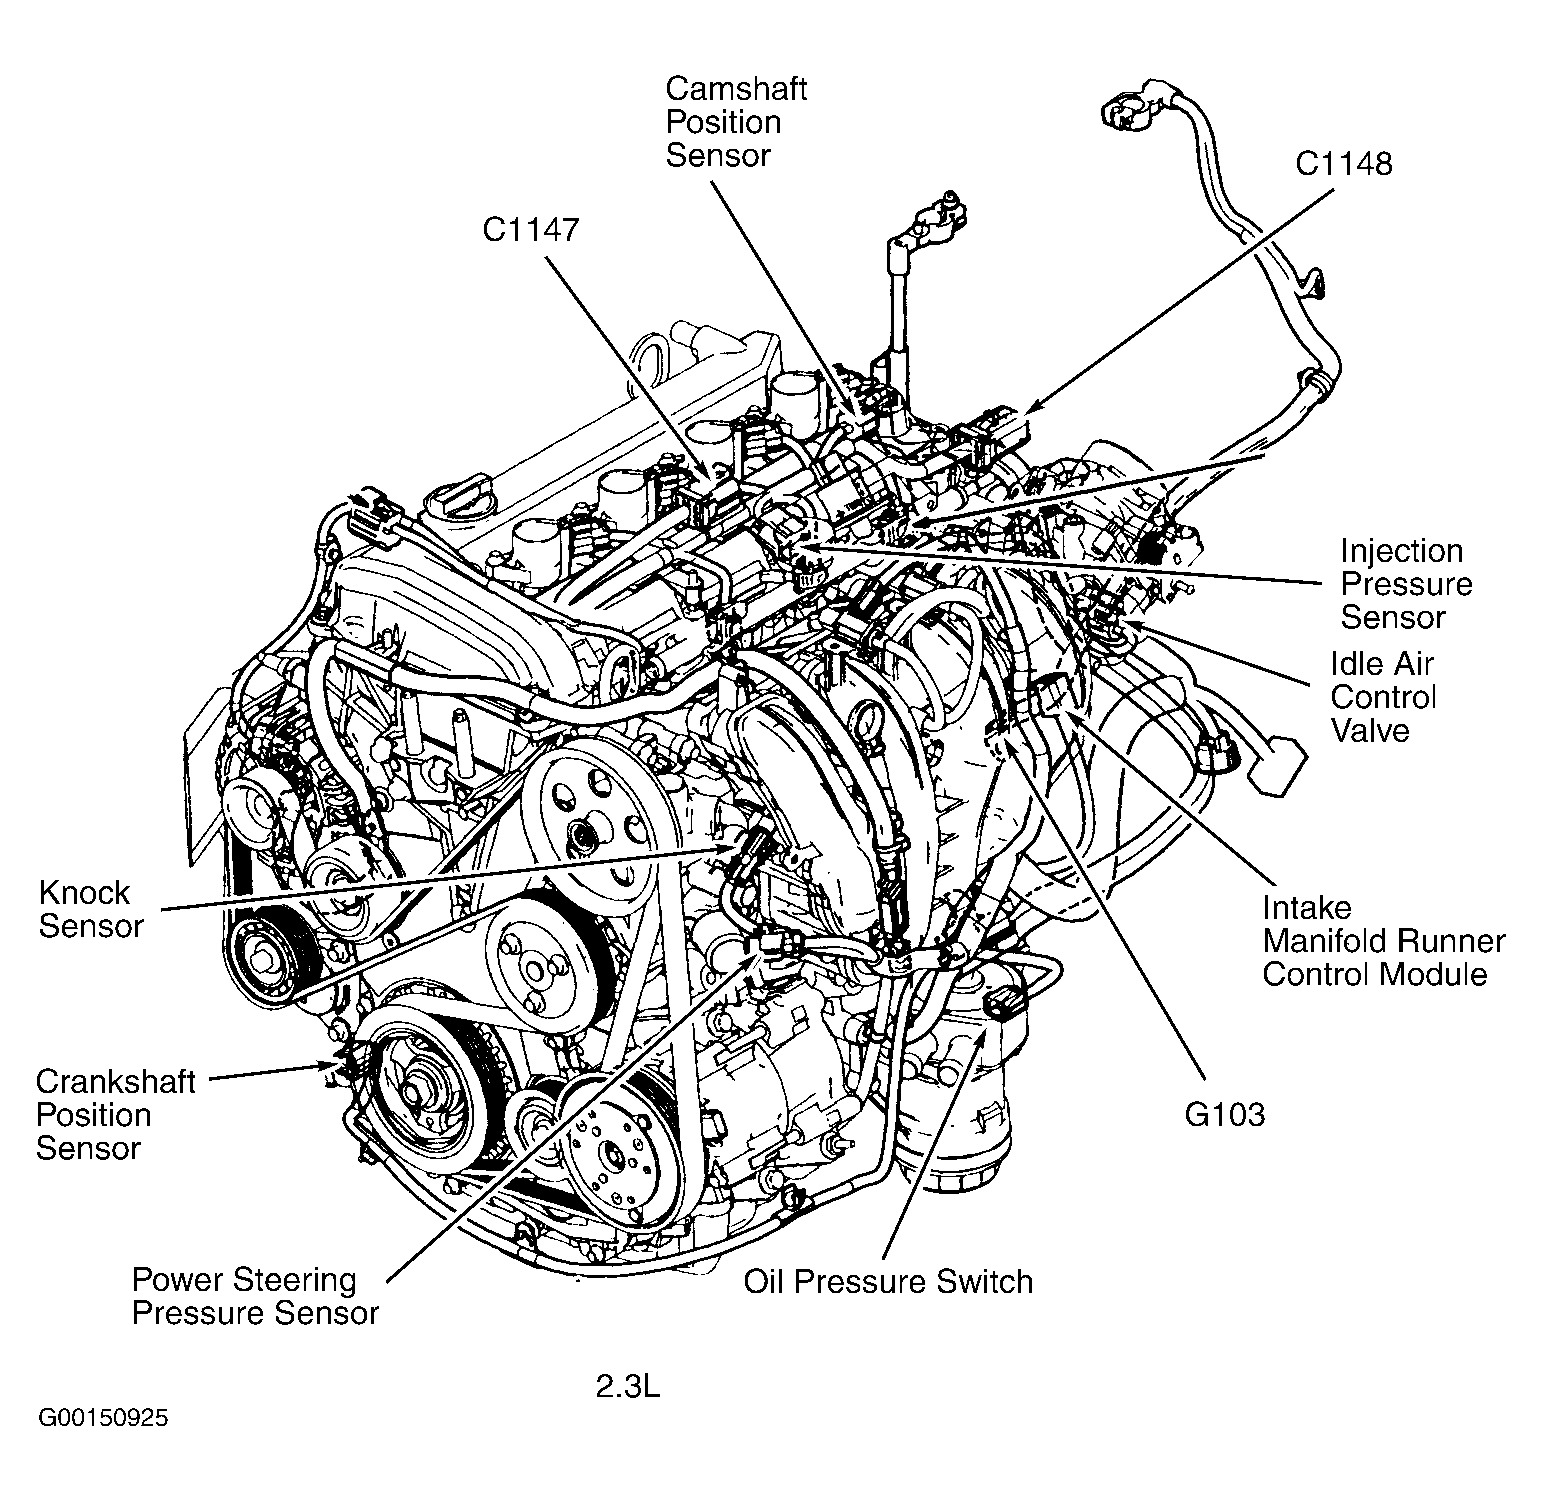 [DIAGRAM] 2001 Ford Focus Motor Diagram FULL Version HD